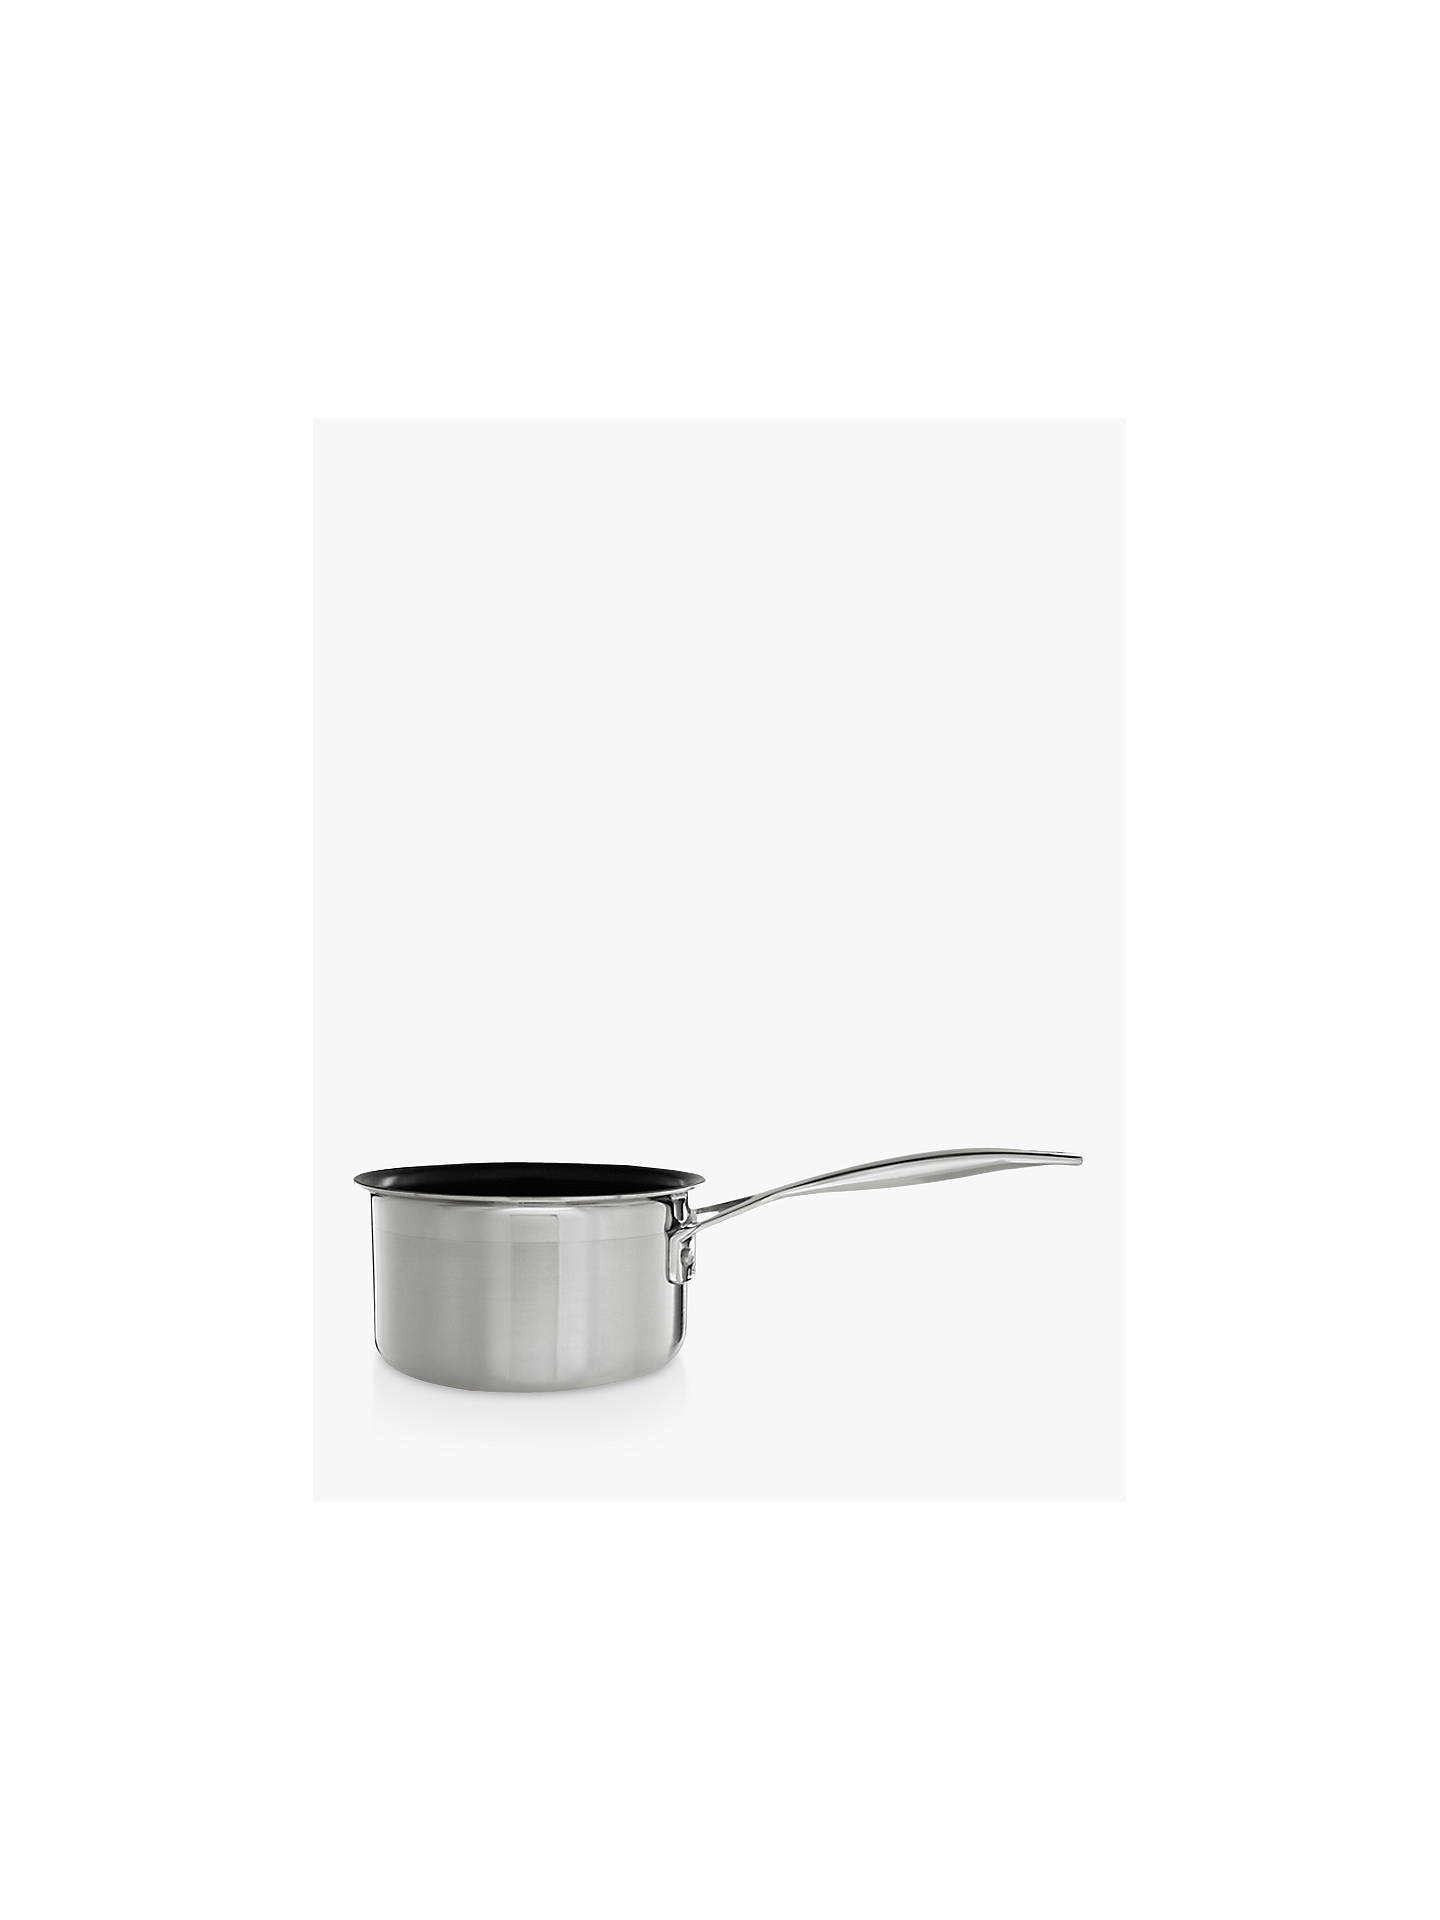 BuyLe Creuset 3-Ply Stainless Steel 14cm Non-Stick Milk Pan Online at johnlewis.com